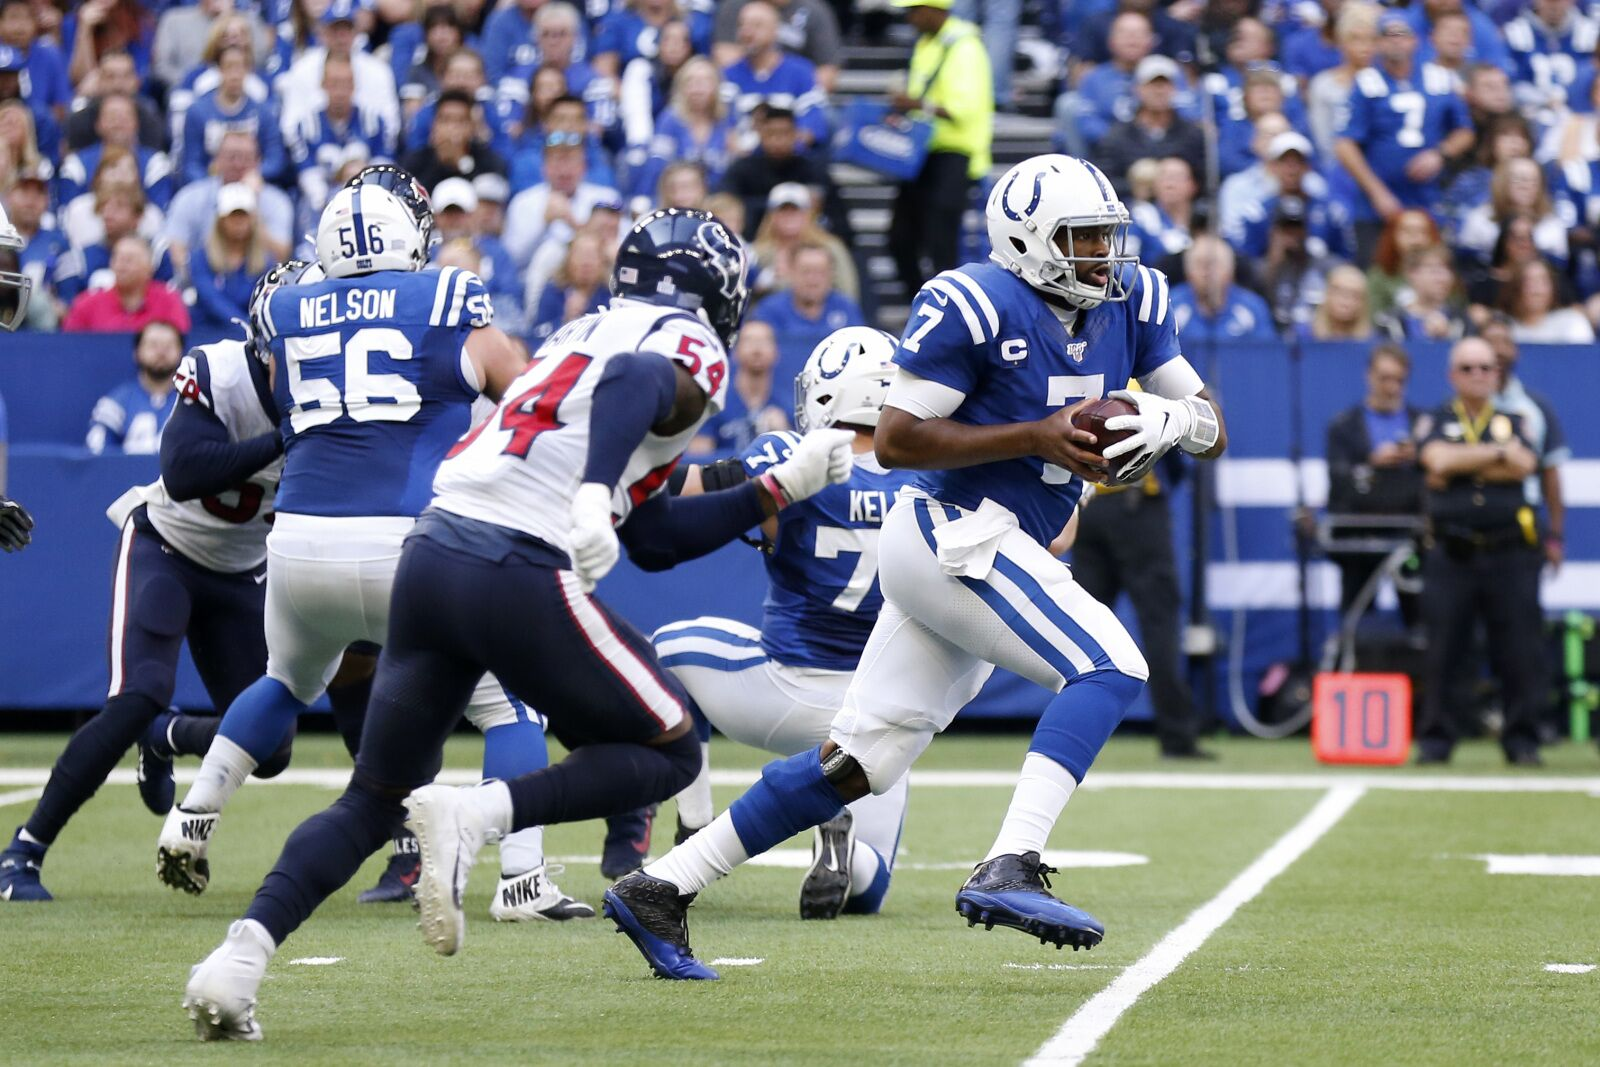 Colts win over Texans and look like AFC contenders